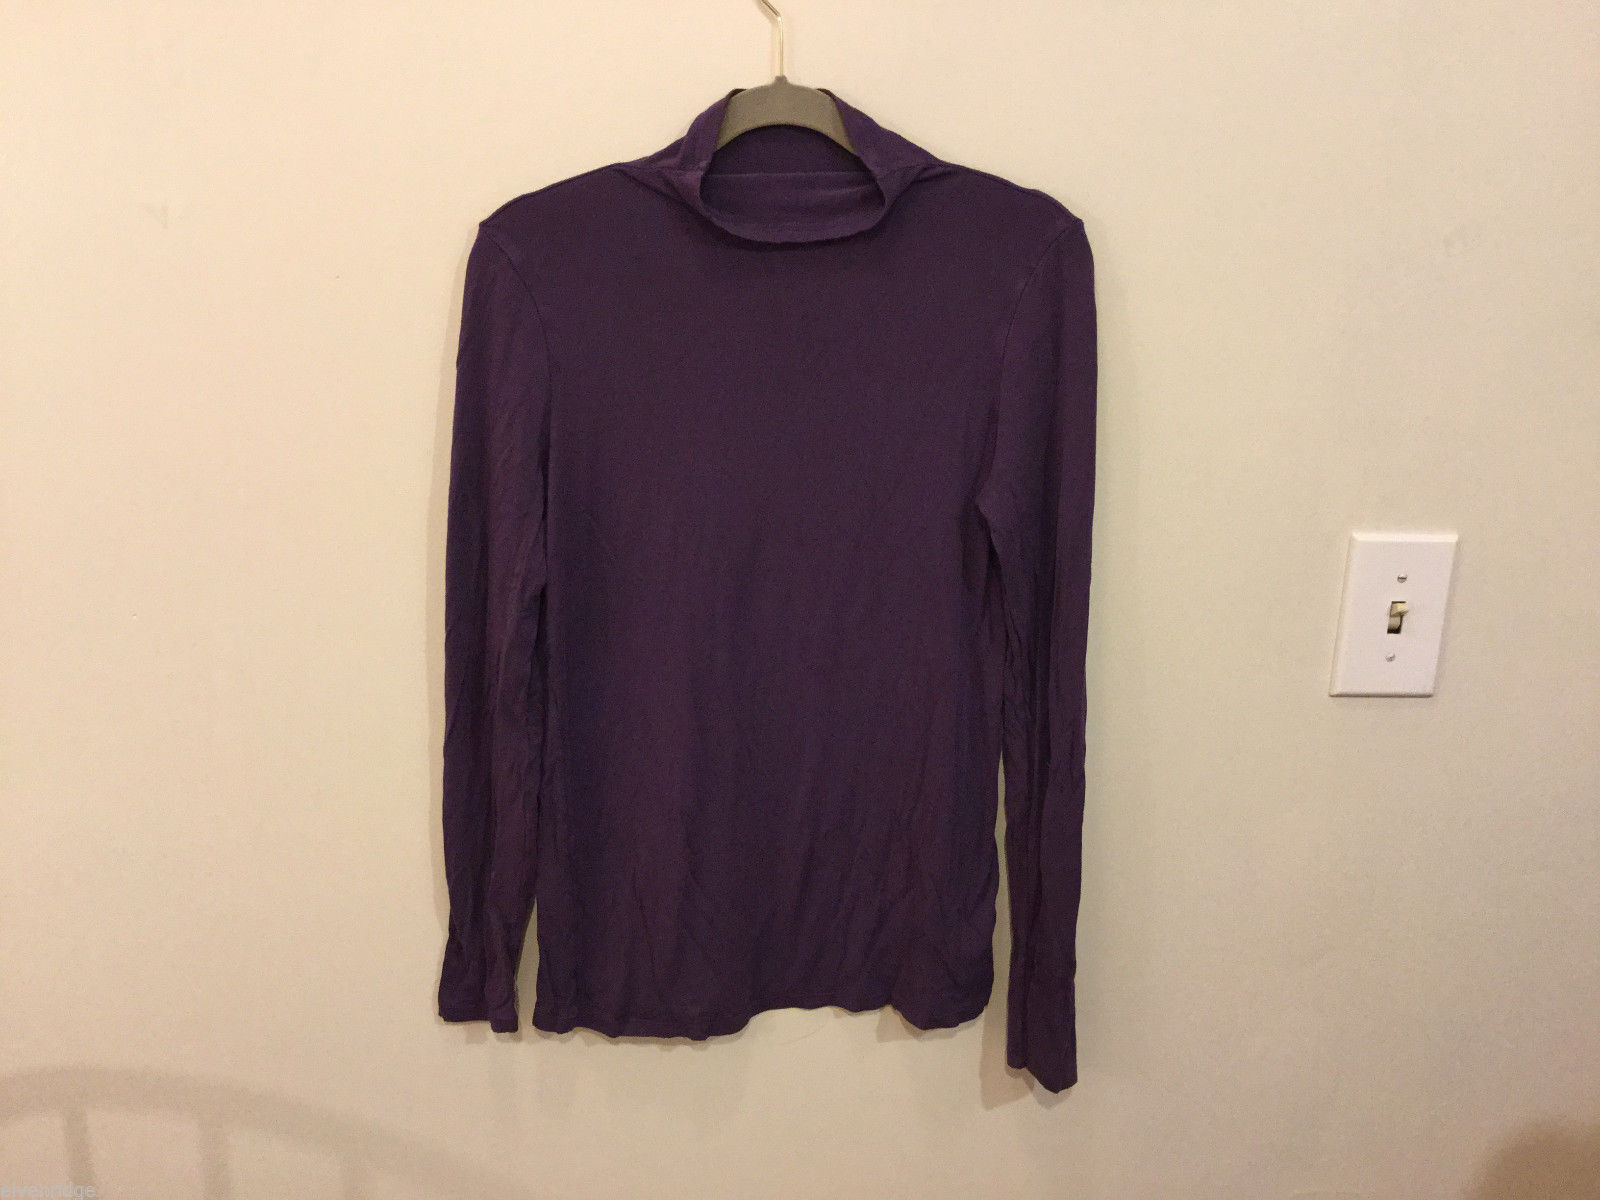 Liz Claiborne Purple Mock Neck Stretchable Rayon Blouse Top Turtleneck, Size S